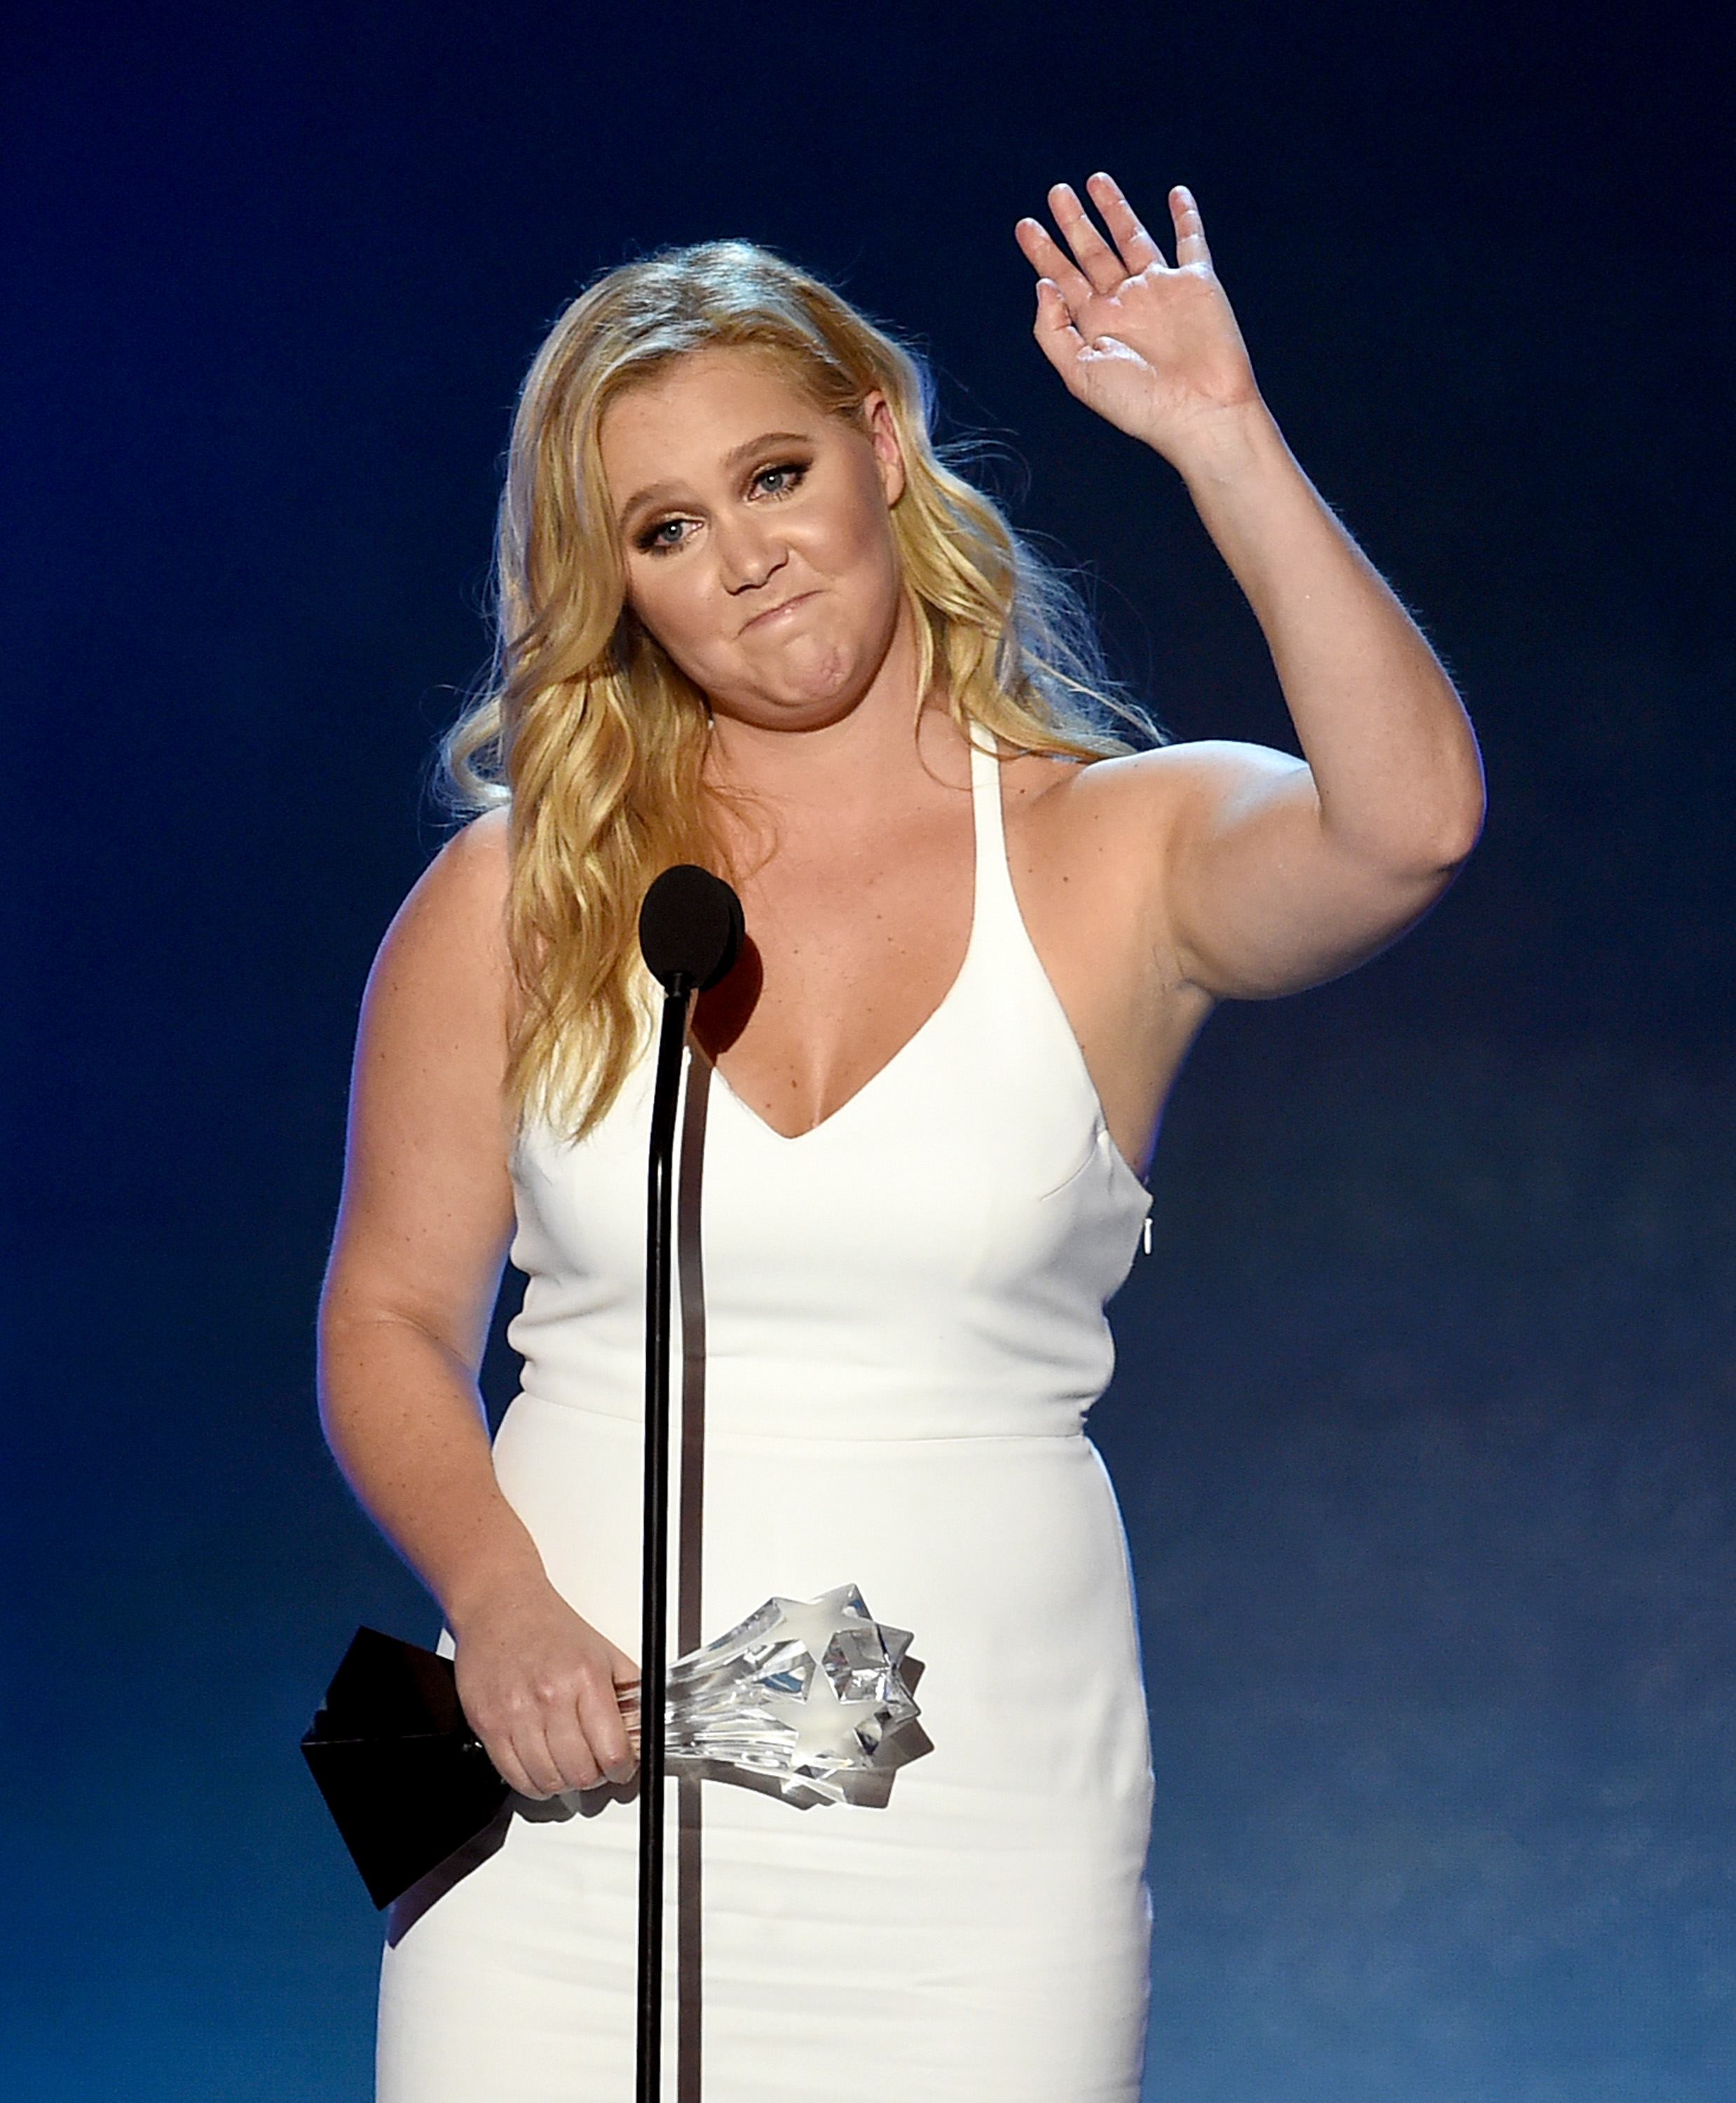 Amy Schumer Told The Funniest Story About Meeting Her Boyfriend's Mom